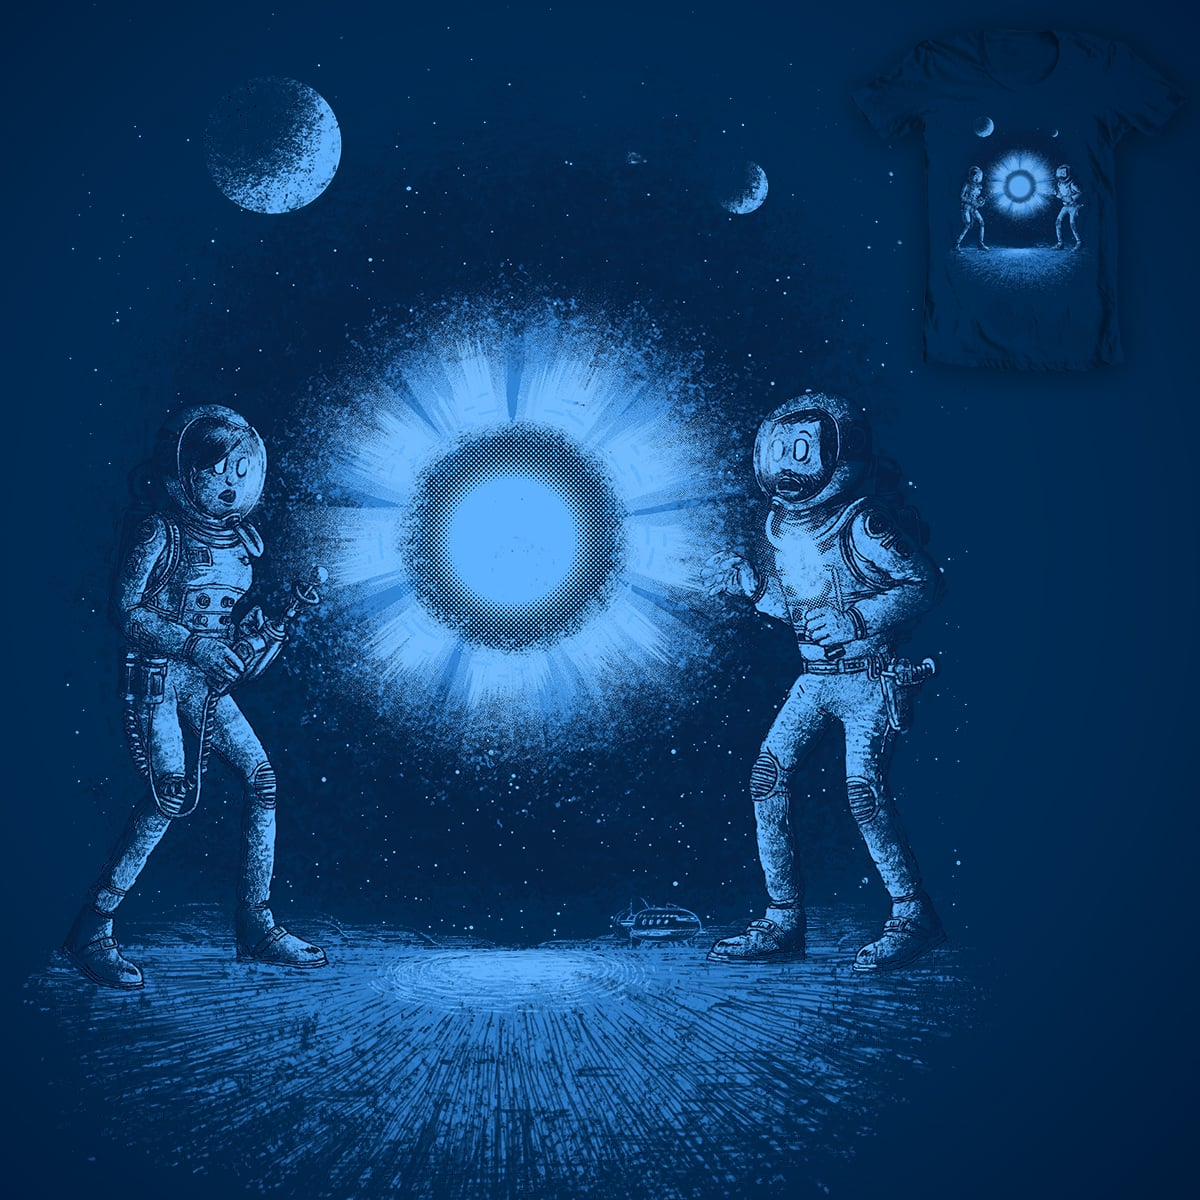 That blue space thingy by c-royal on Threadless